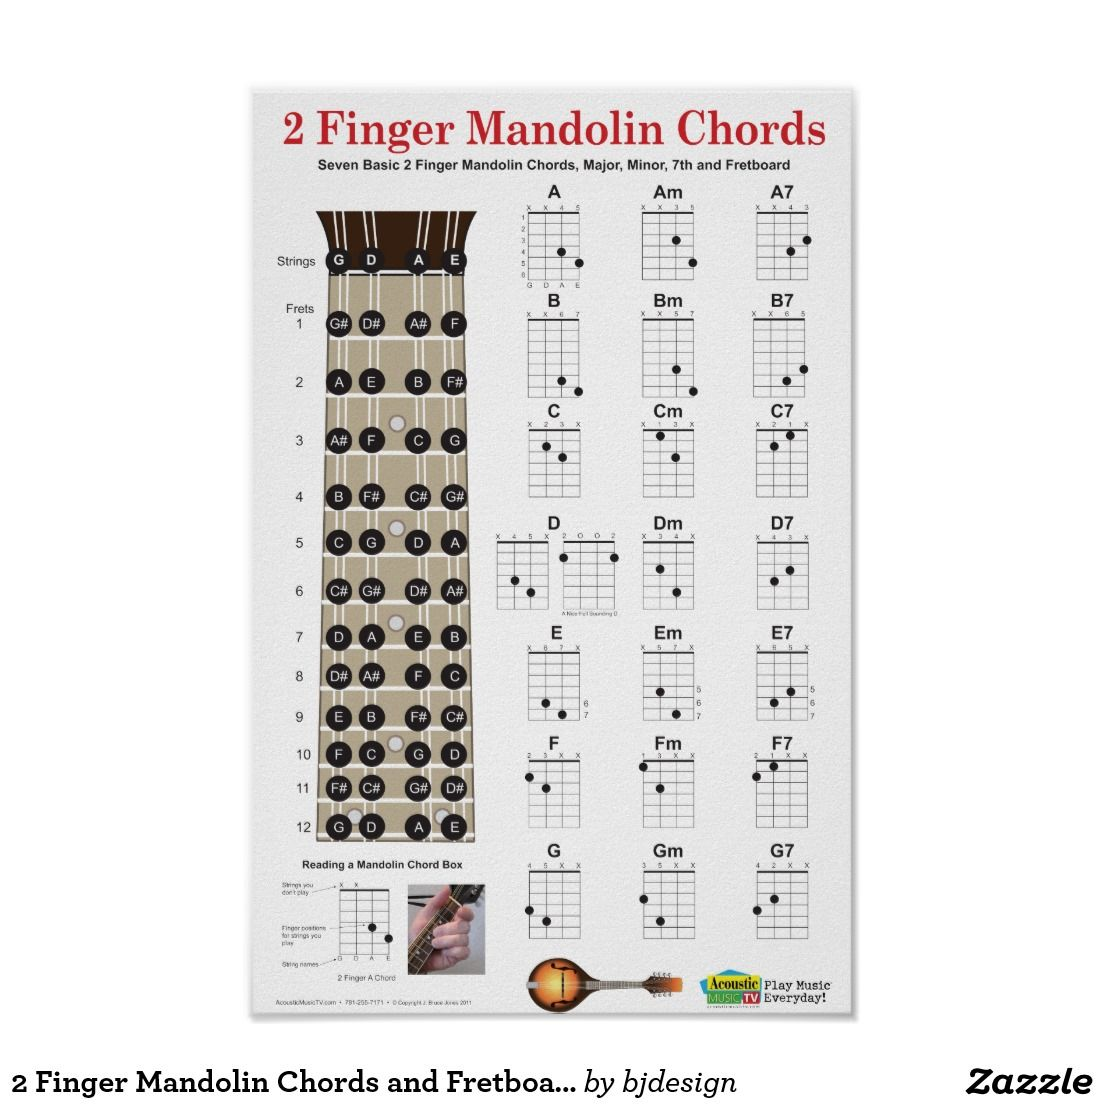 2 finger mandolin chords and fretboard poster emdatabs 2 finger mandolin chords and fretboard poster hexwebz Image collections